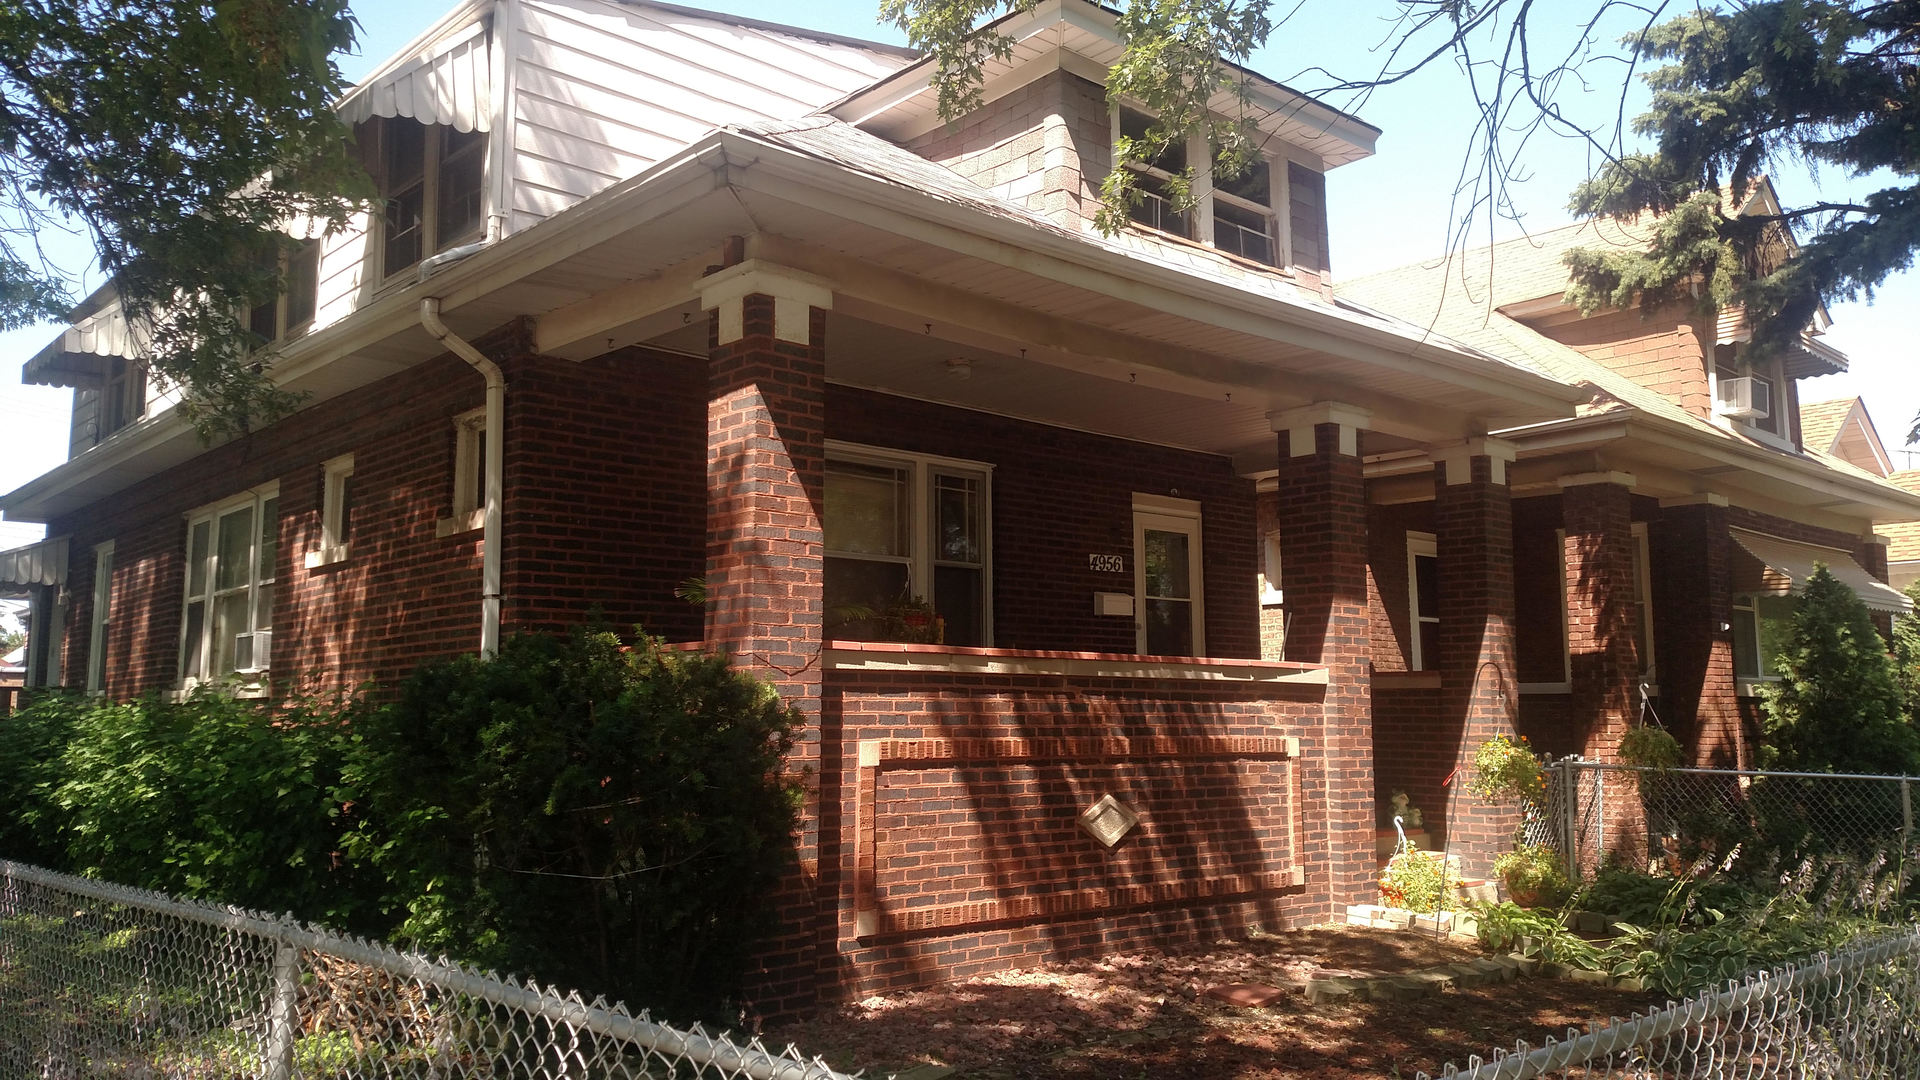 4956 Oakdale ,Chicago, Illinois 60641